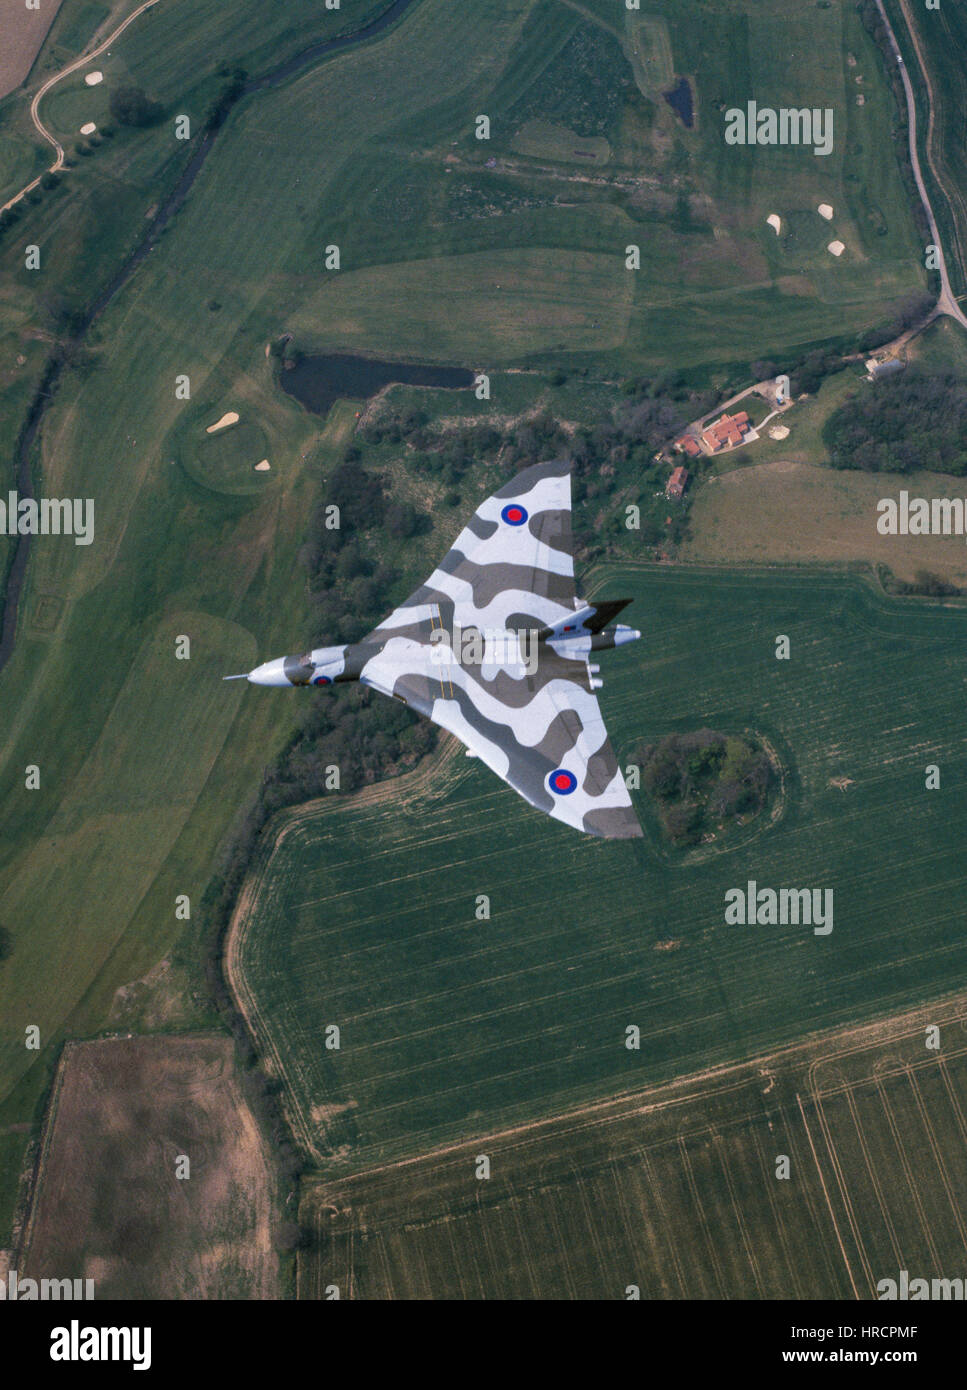 Avro Vulcan B2 bomber flying over the English countryside. - Stock Image